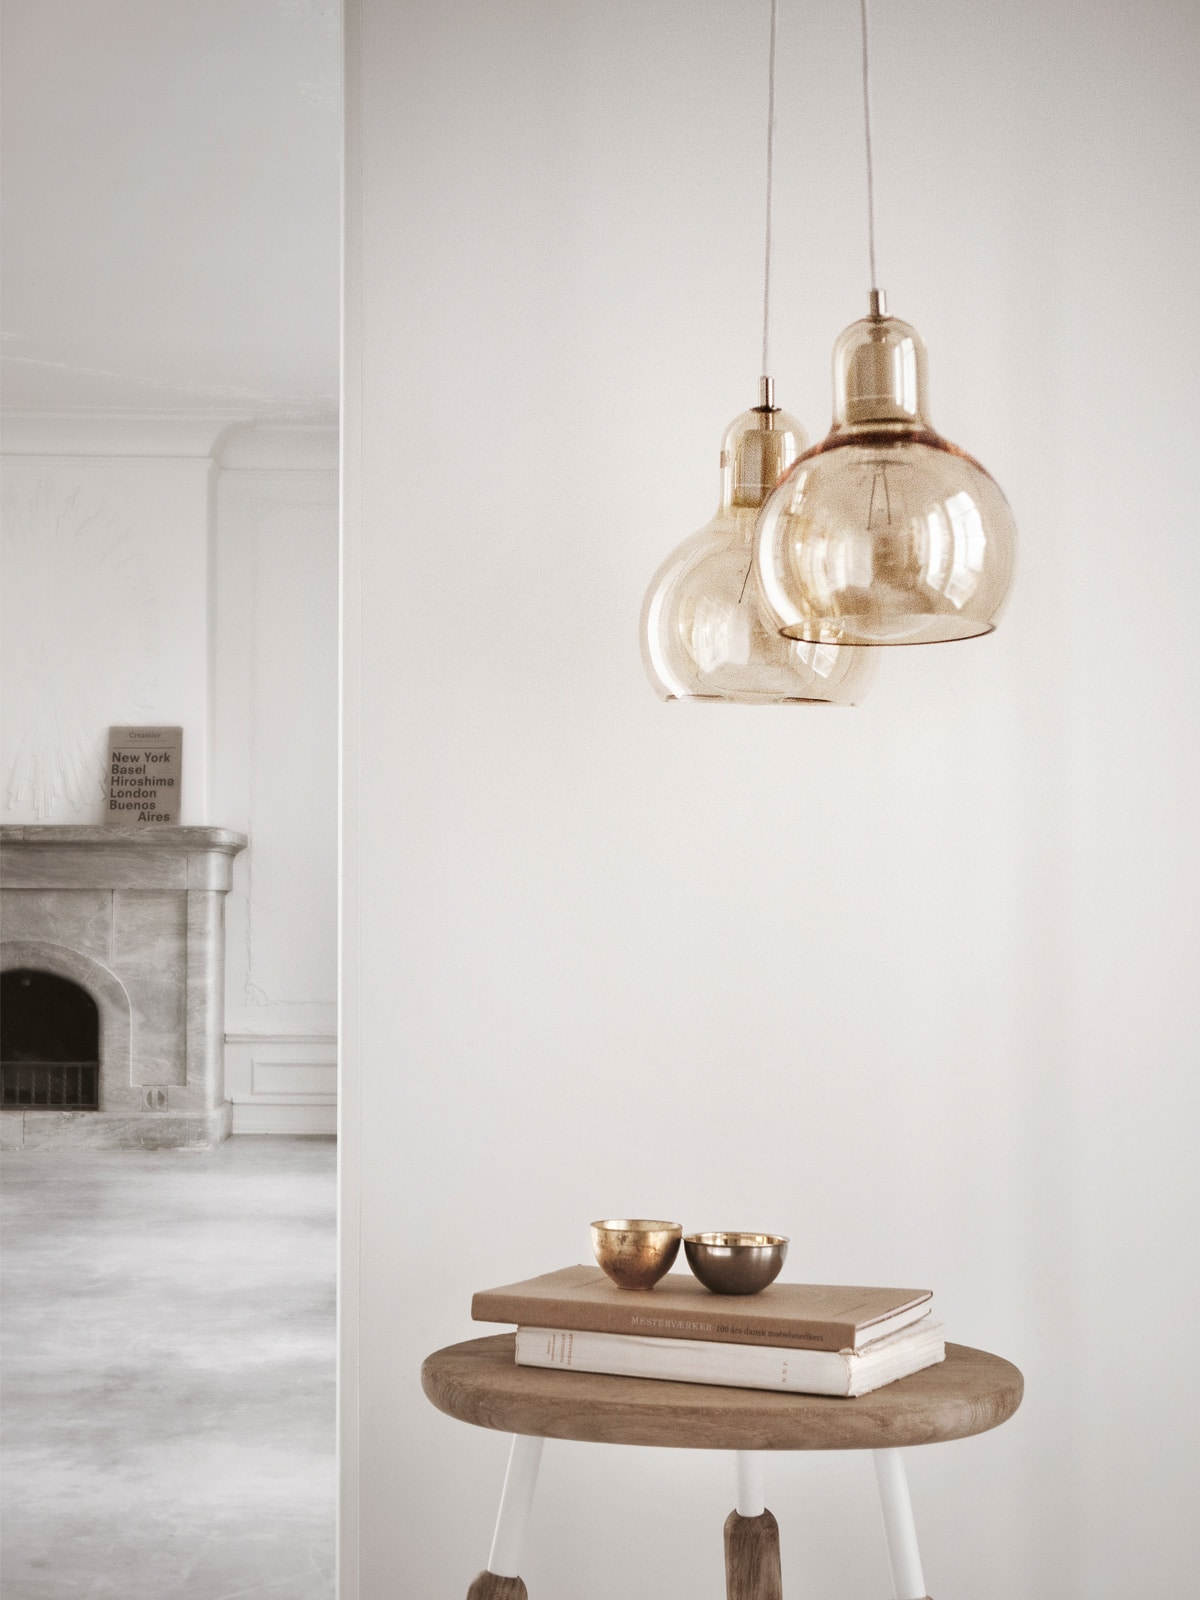 DesignOrt Blog: Pendelleuchten aus Glas &tradition Mega Bulb in Gold